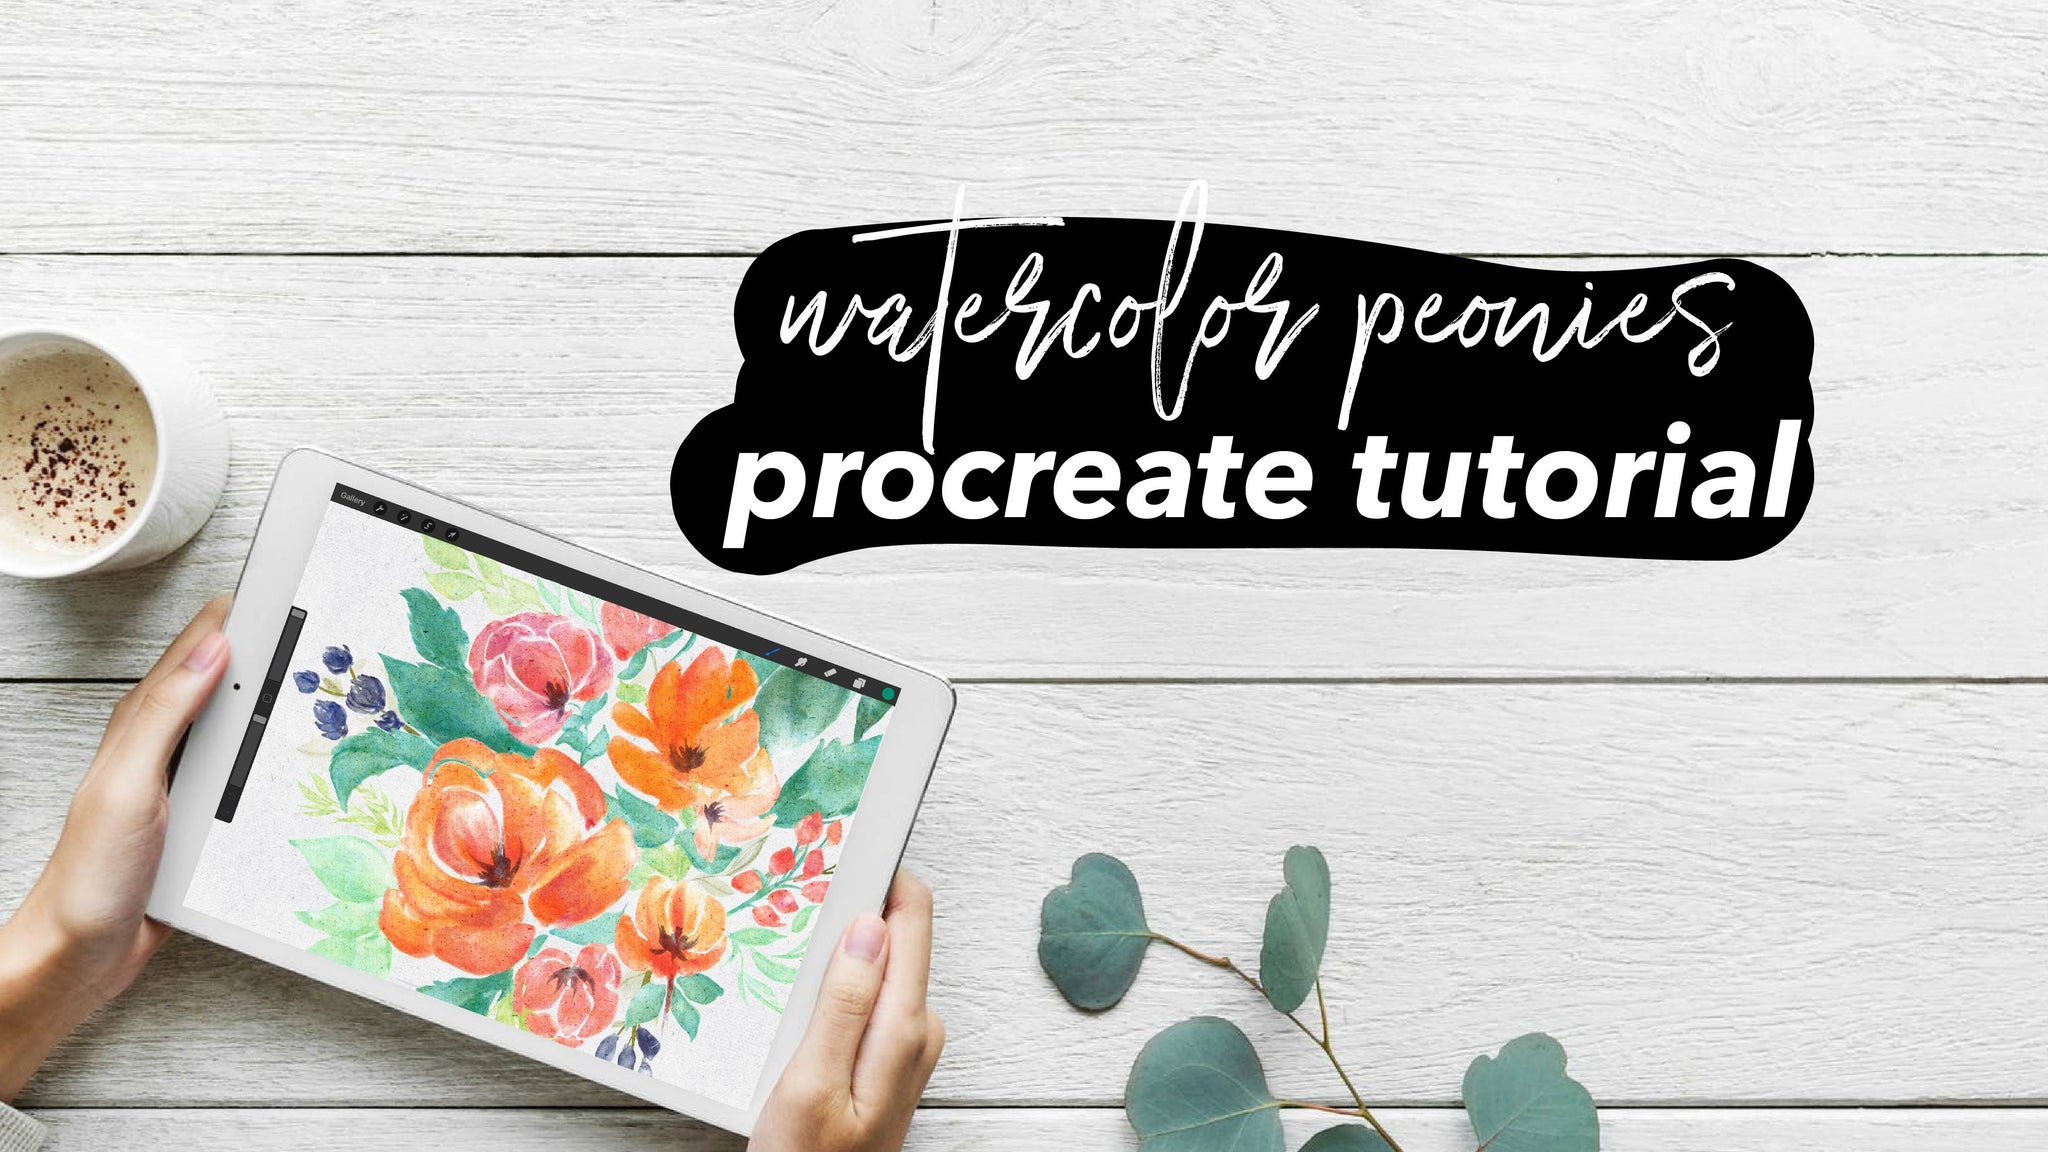 Watercolor Peonies Procreate Tutorial